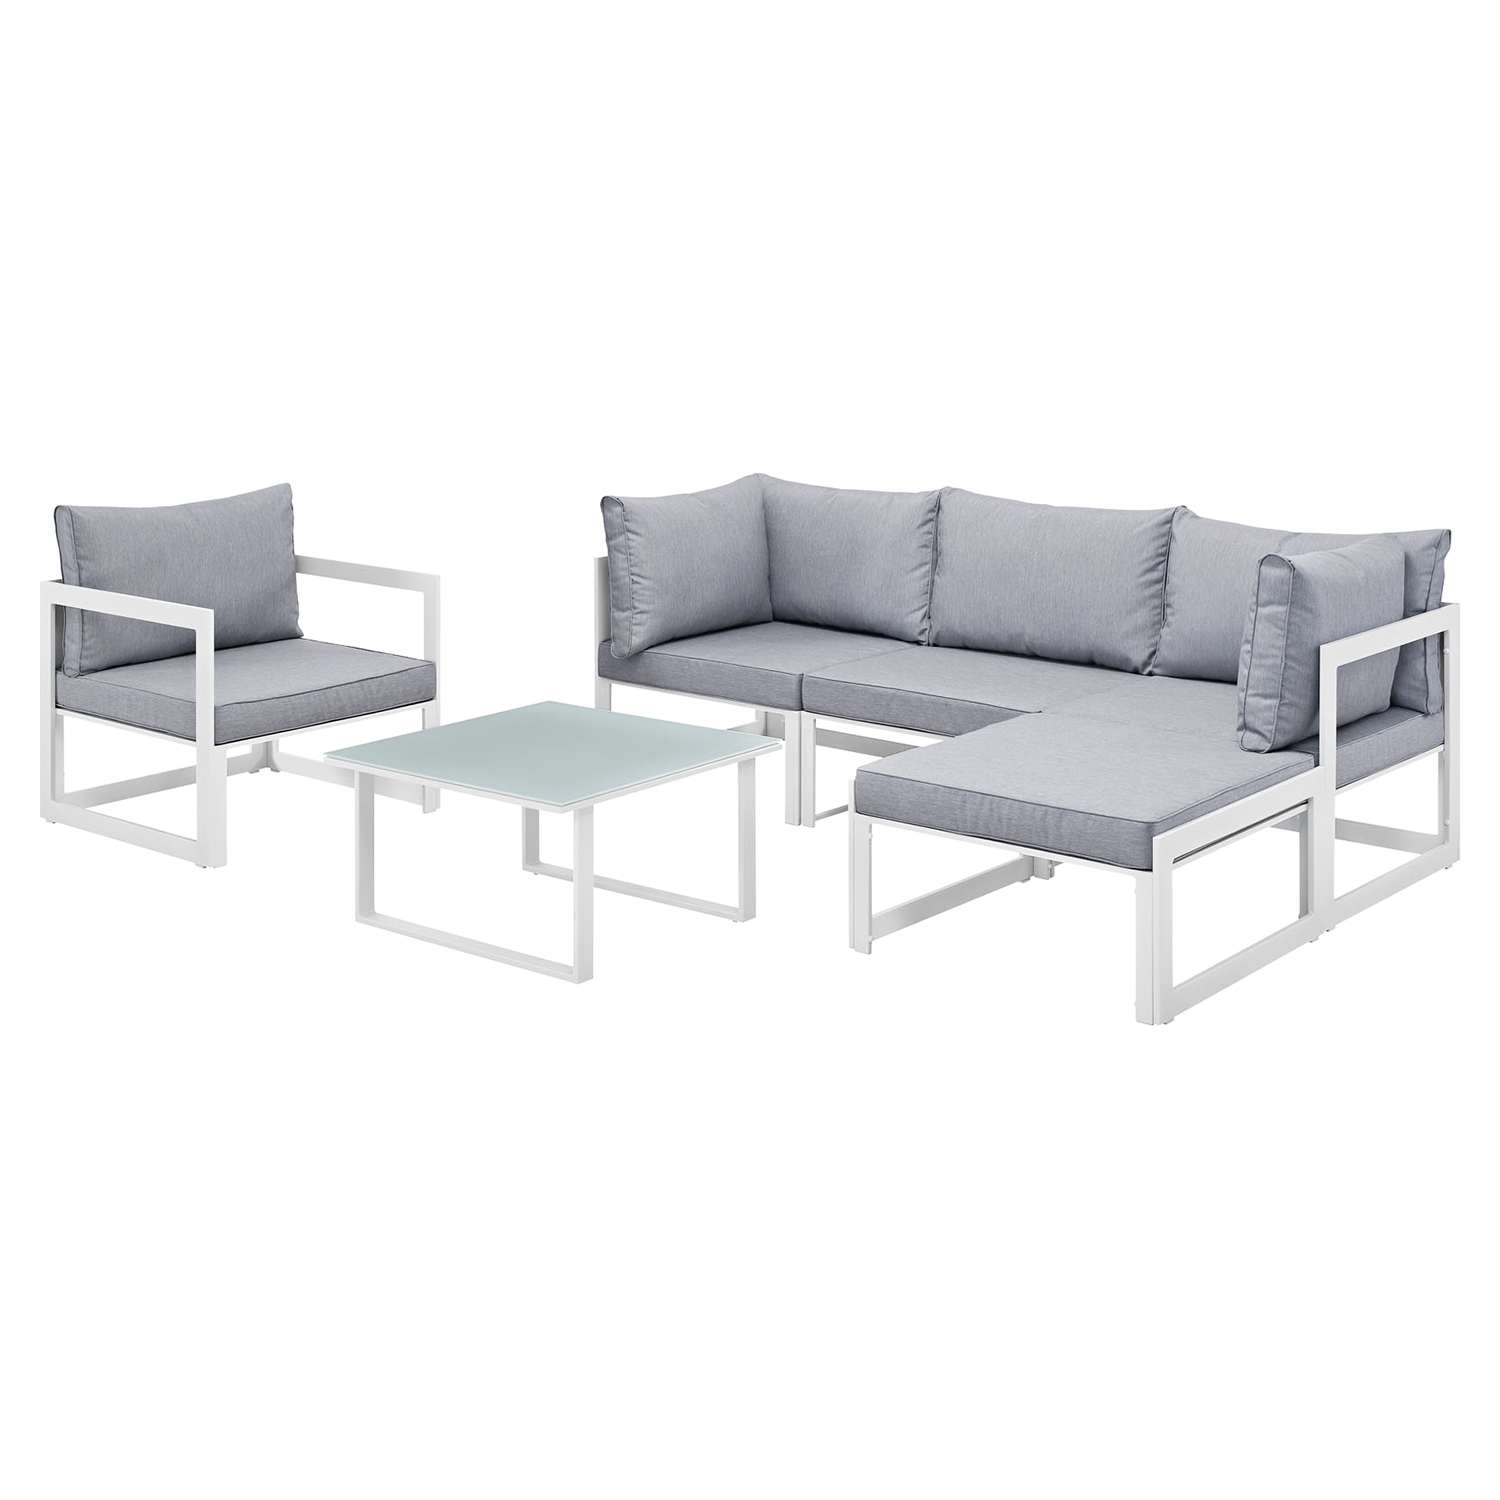 Fortuna 6 Pieces Outdoor Patio Sofa Set - White Frame, Gray Cushion - EEI-1731-WHI-GRY-SET